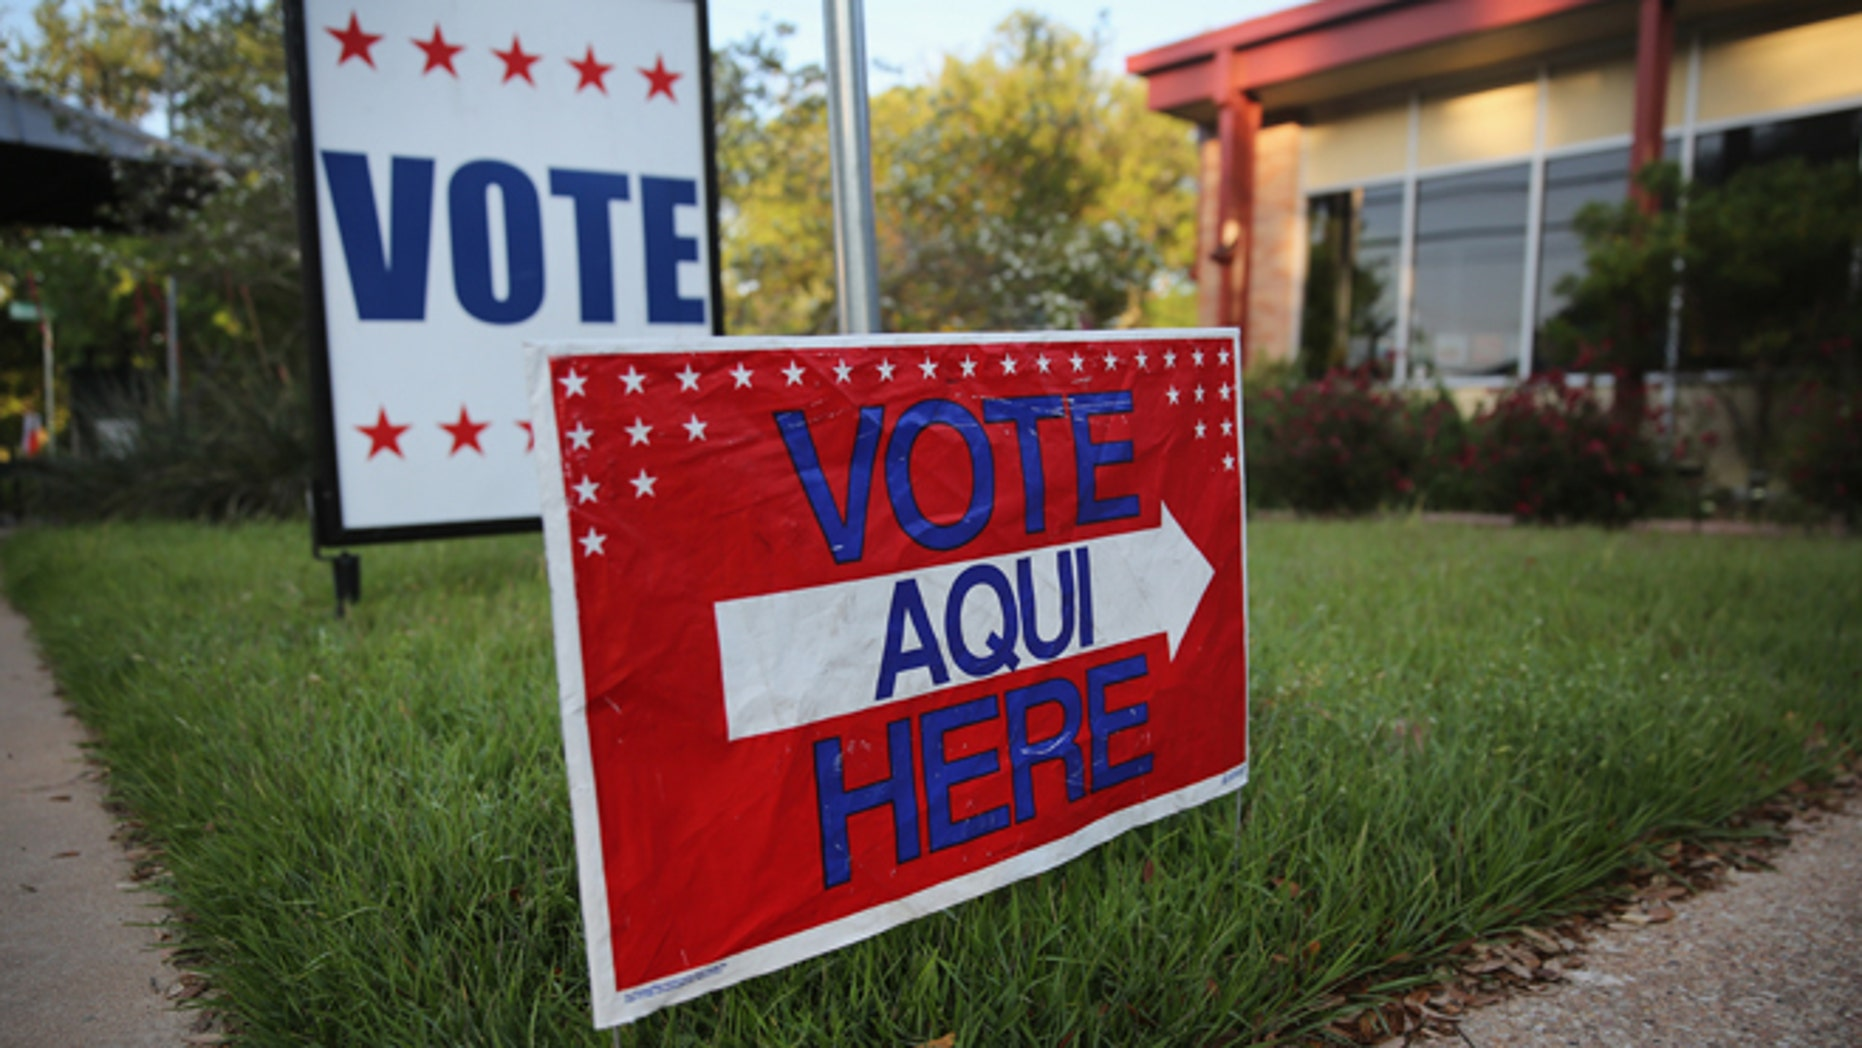 A bilingual sign stands outside a polling center at public library ahead of local elections on April 28, 2013 in Austin, Texas. (Photo by John Moore/Getty Images)